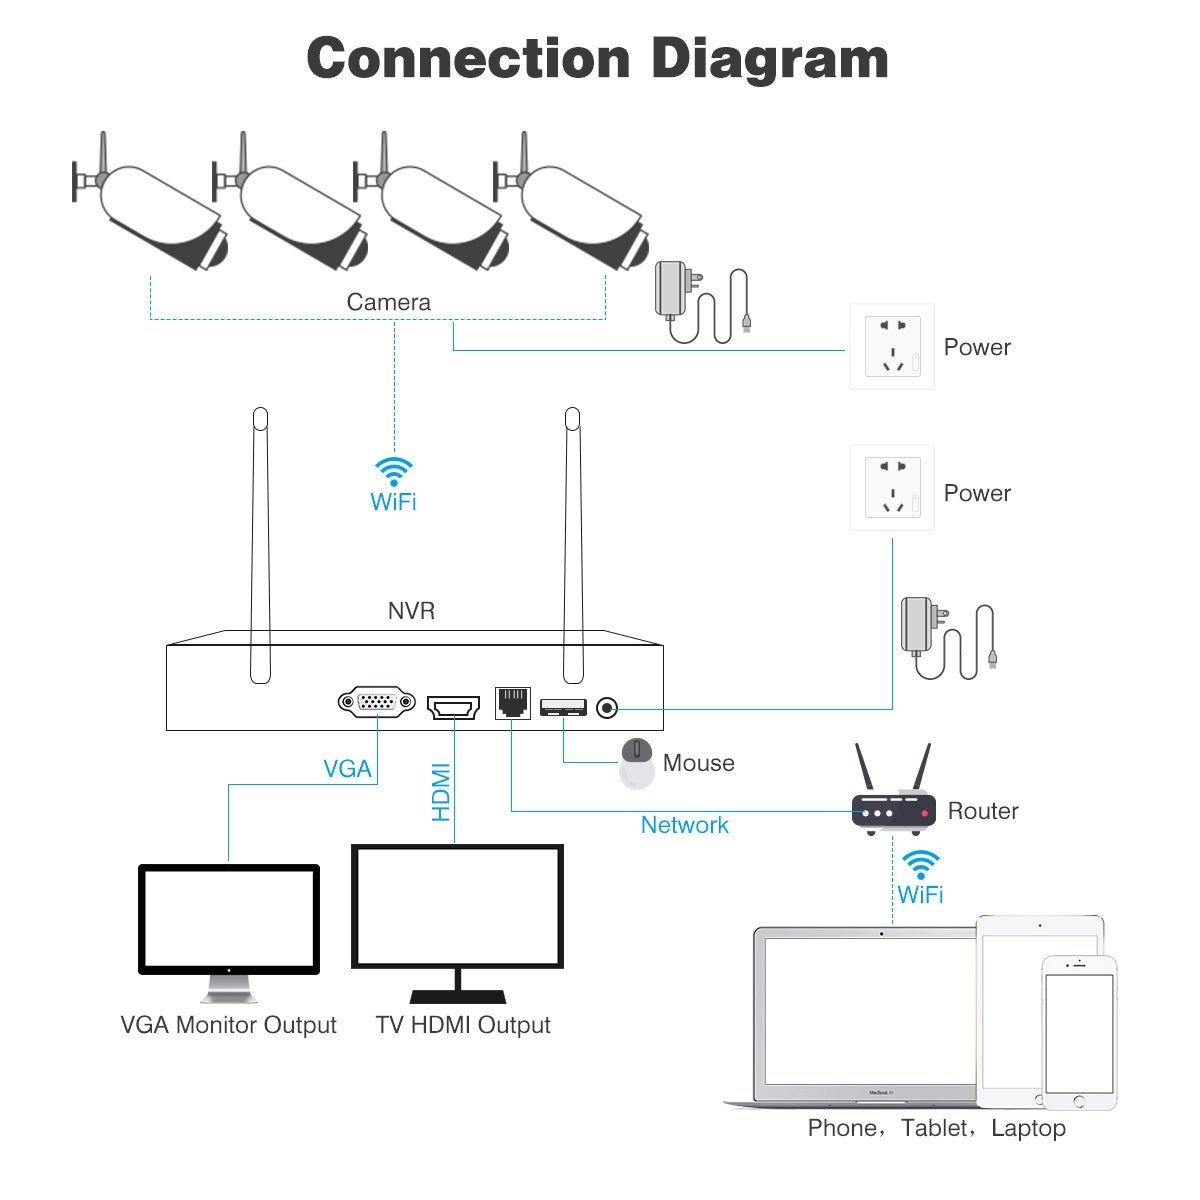 Connections In Addition 2013 Hyundai Accent Likewise Cctv ... on